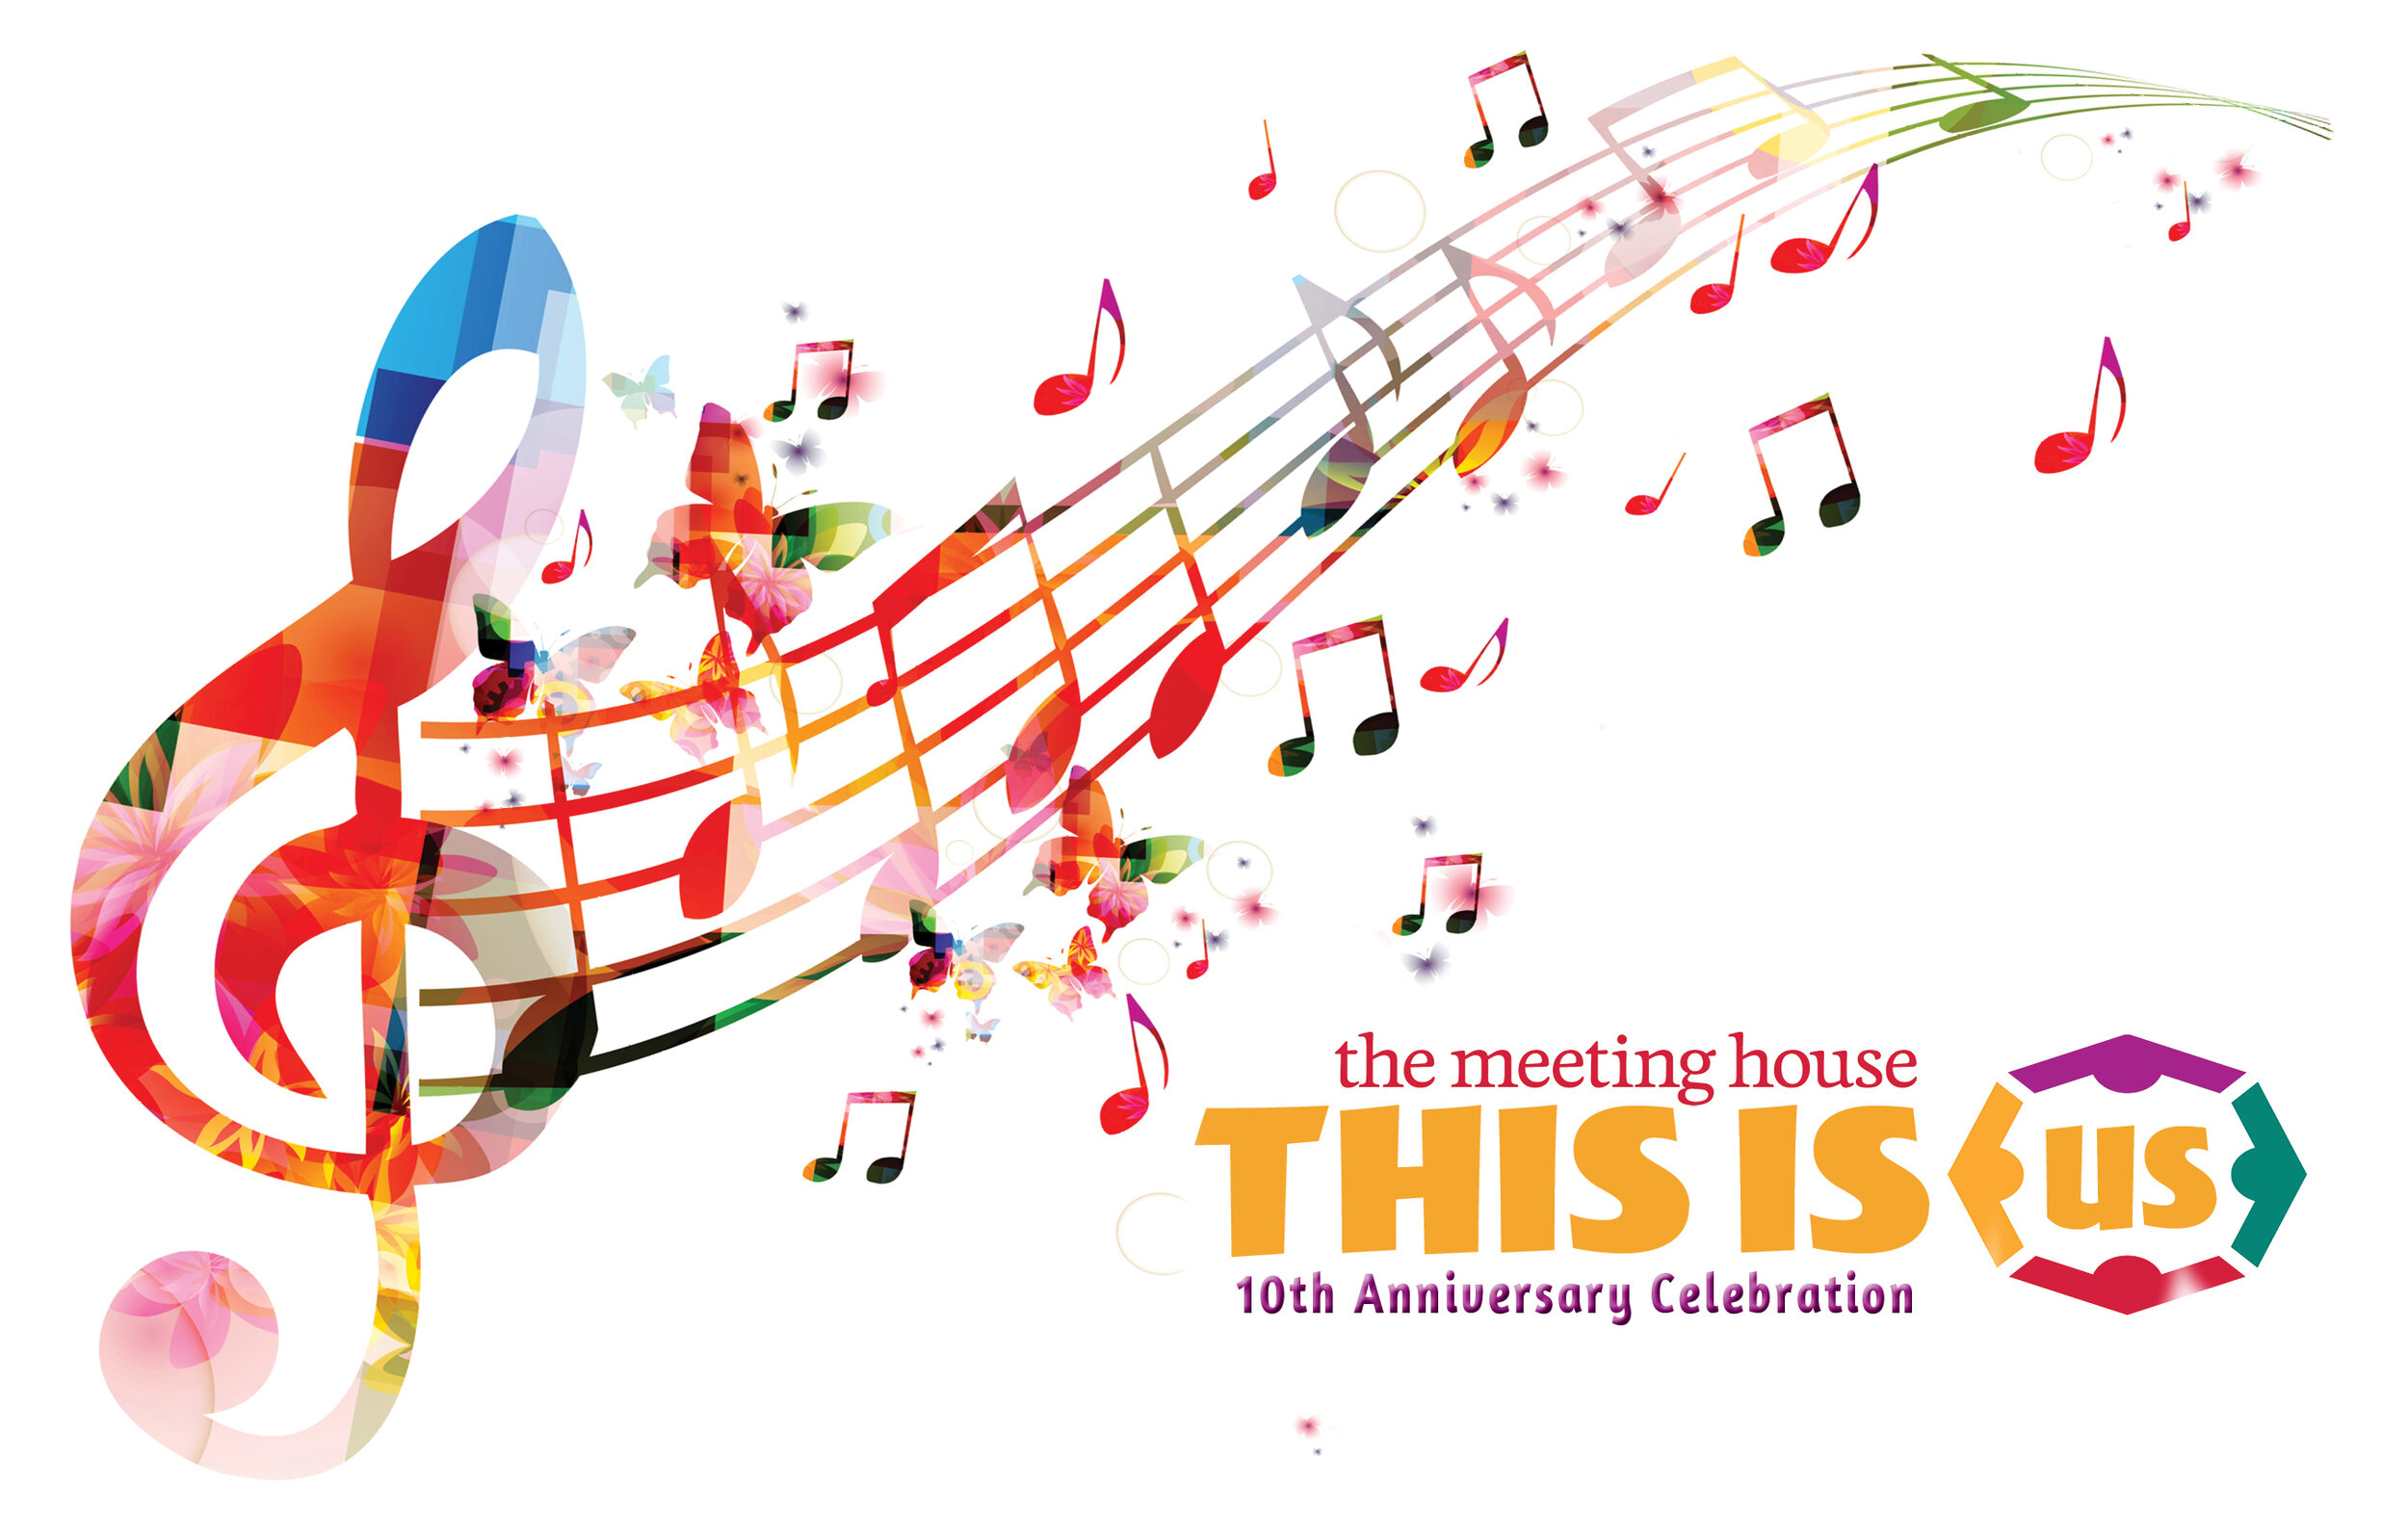 10 Years at The Meeting House